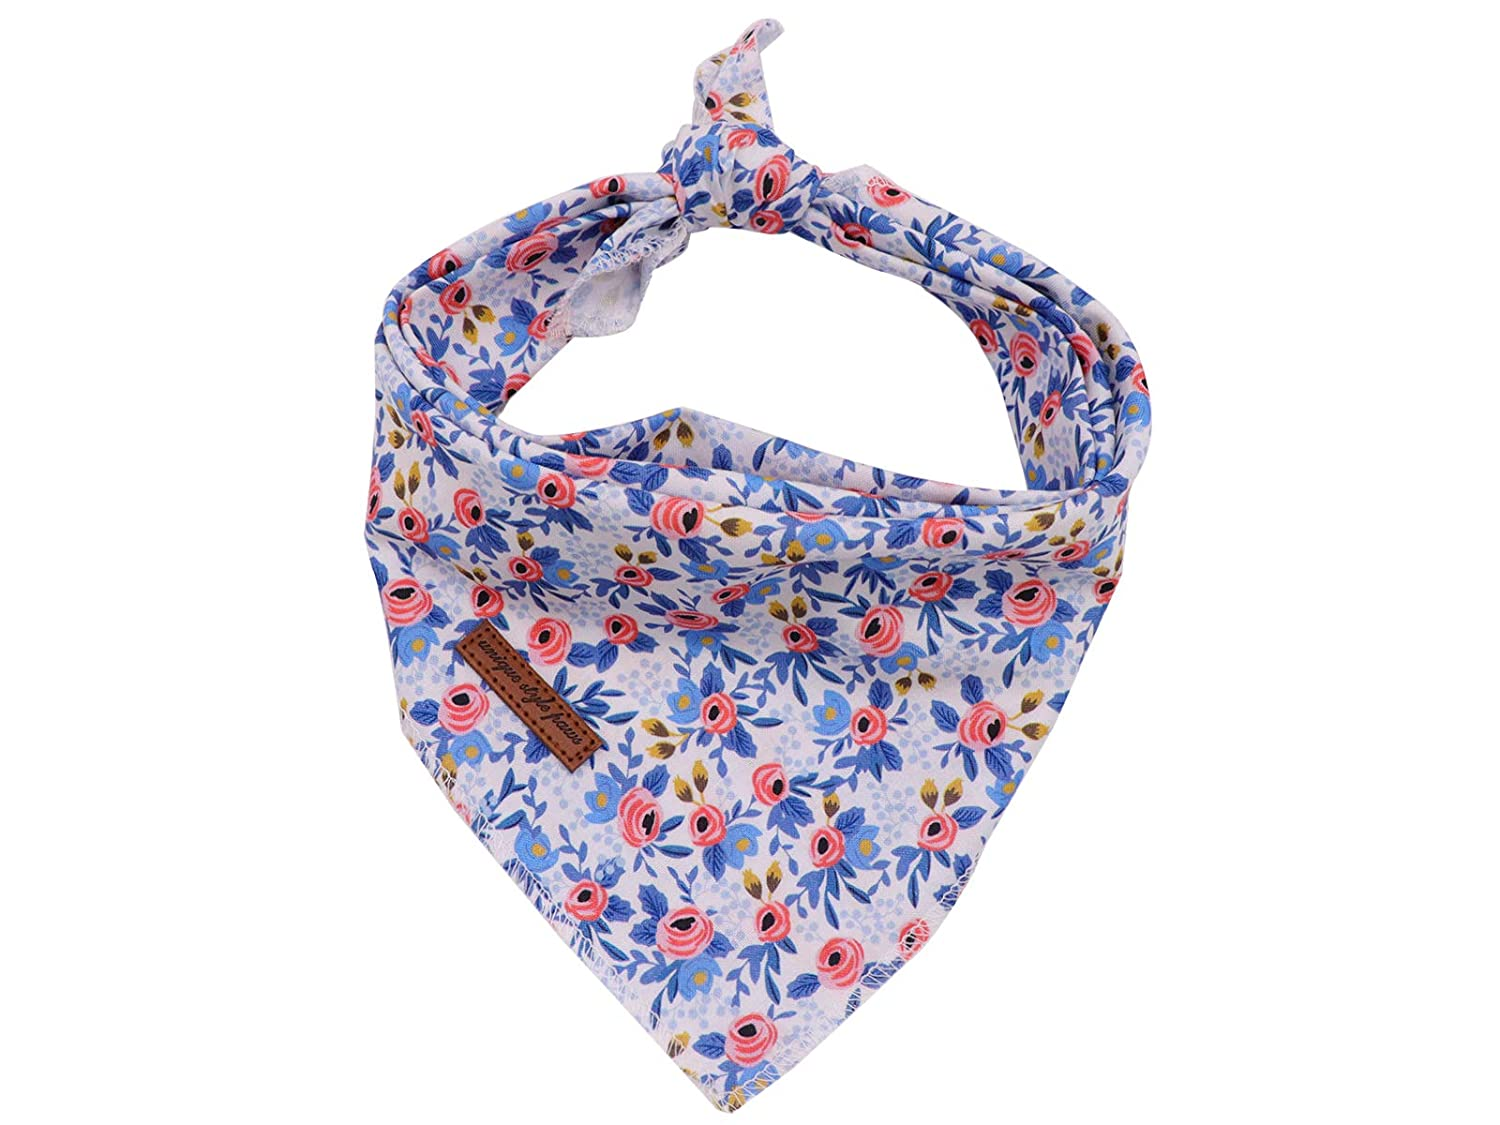 Unique style paws Dog Bandanas 1PC Washable Cotton Triangle Dog Scarfs for Small Medium Large Dogs and Cats